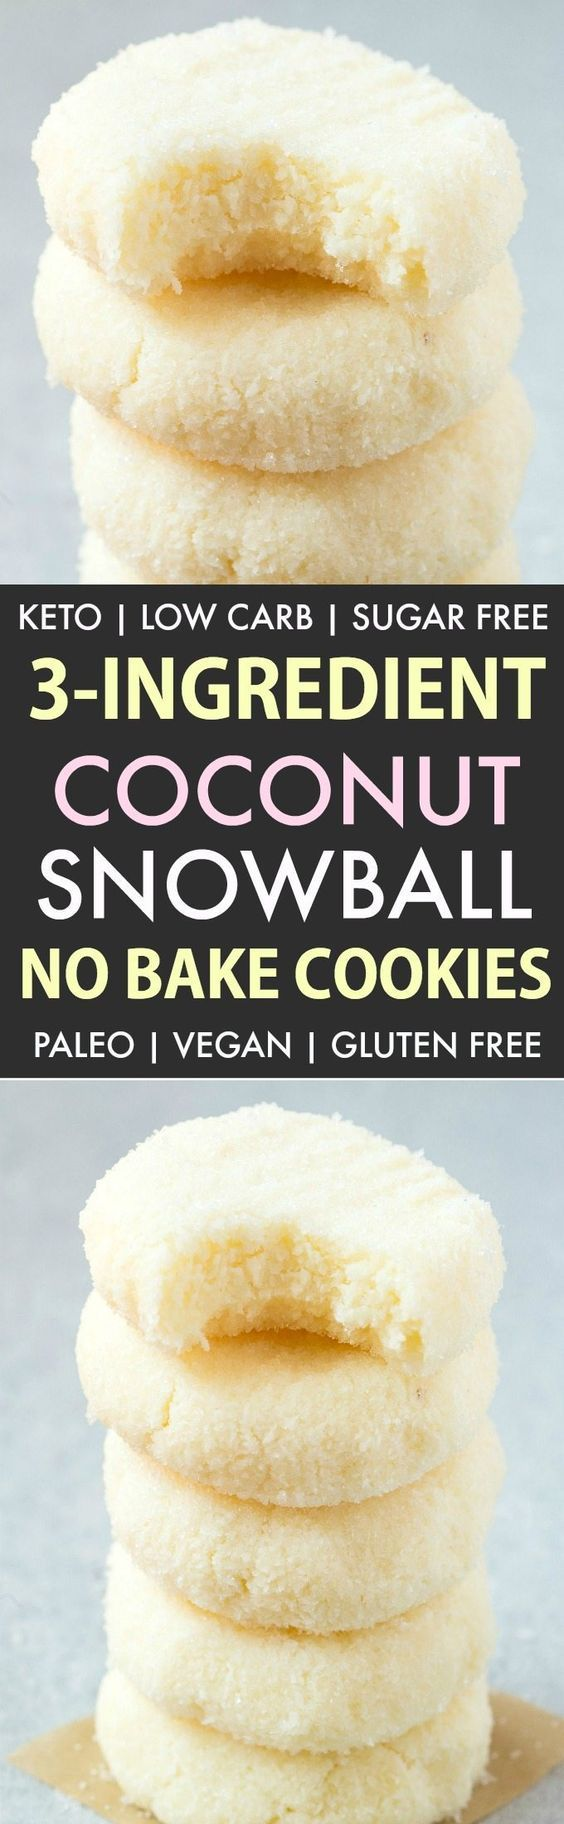 3 Ingredient No Bake Coconut Snowball Cookies (Keto, Paleo, Vegan, Sugar Free)- An easy, 5-minute recipe for soft coconut snowballs, but made in a cookie shape! No condensed milk, sugar, or dairy needed and super low carb. #lowcarbrecipe #nobakecookies #ketodessert #lowcarb #sugarfree | Recipe on thebigmansworld.com